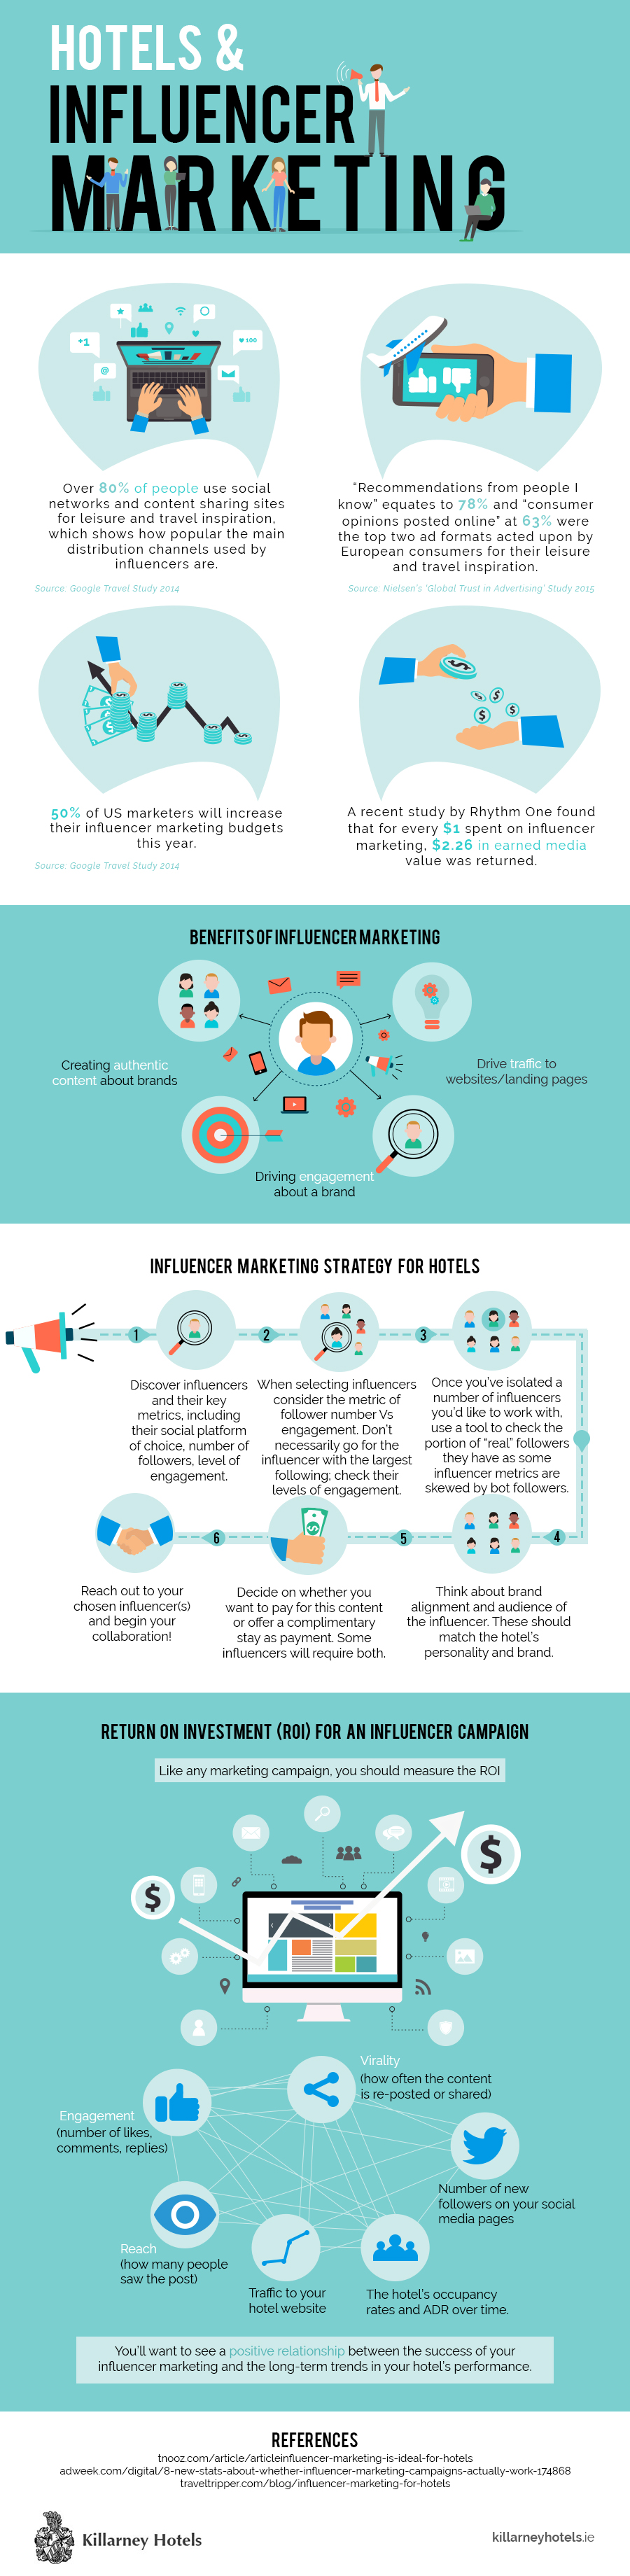 Hotels-Influencer-Marketing–Infographic